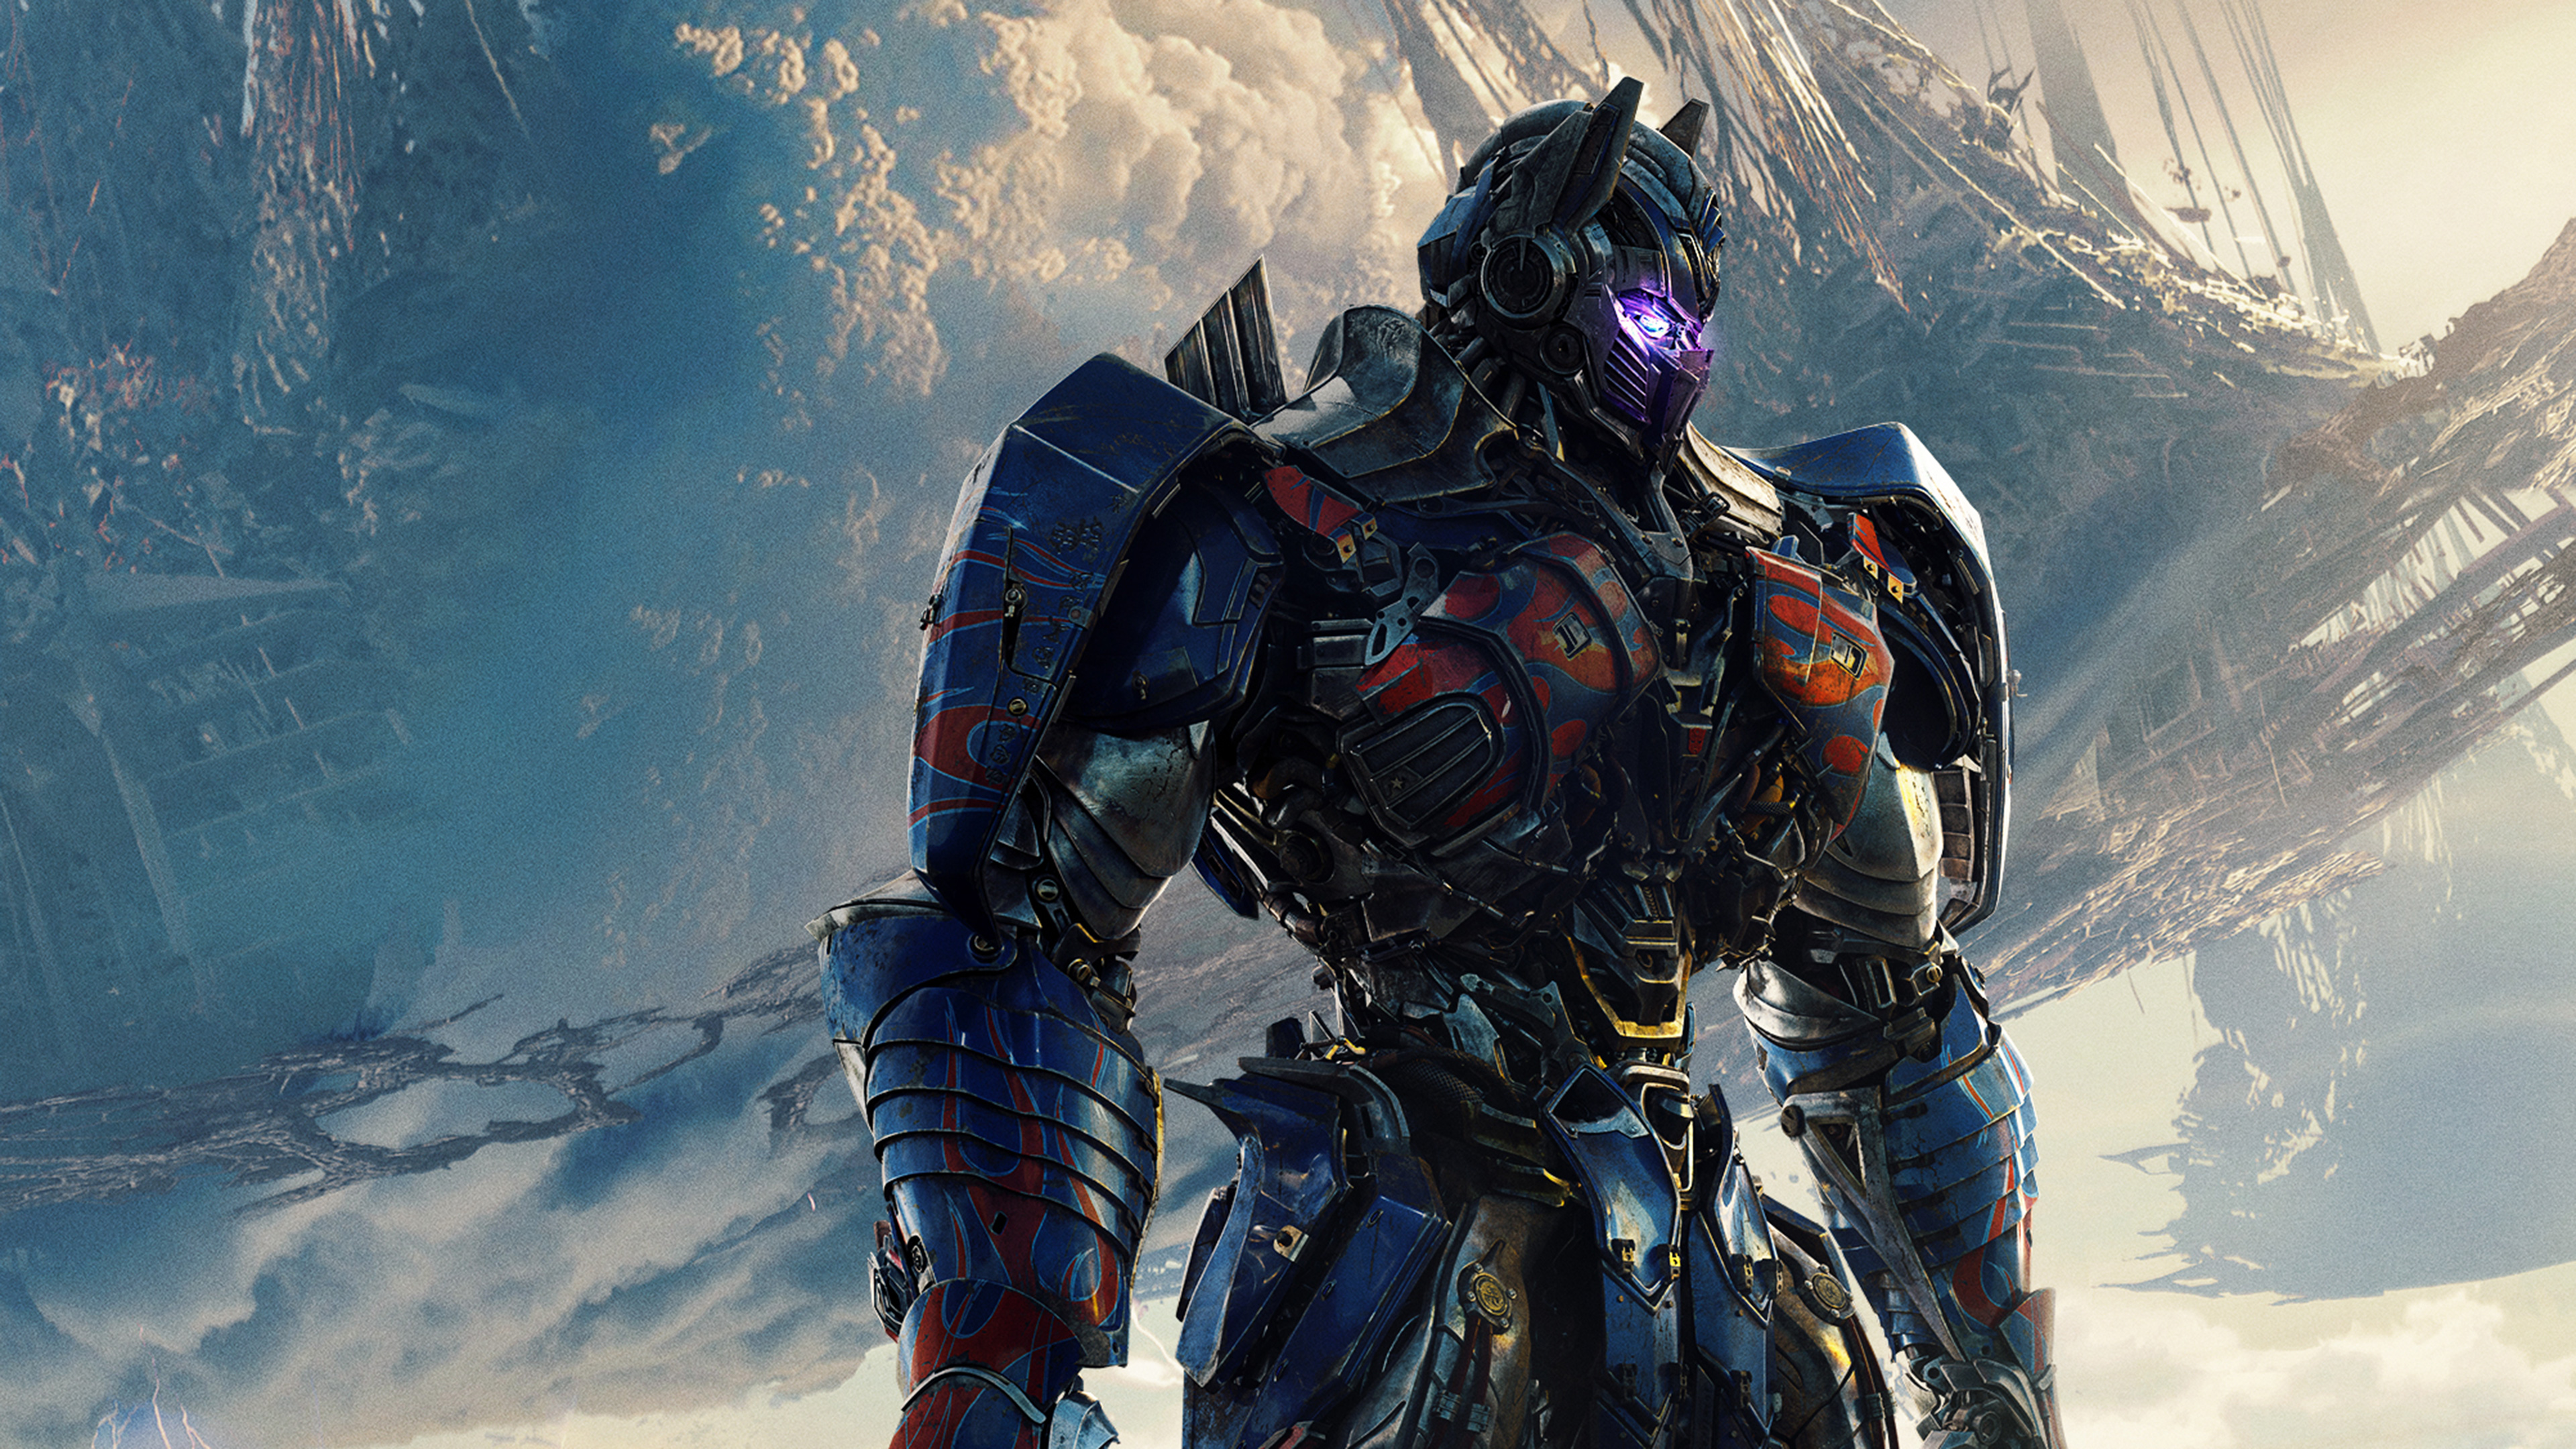 transformers the last knight 2017 movie 4k hd movies 4k wallpapers